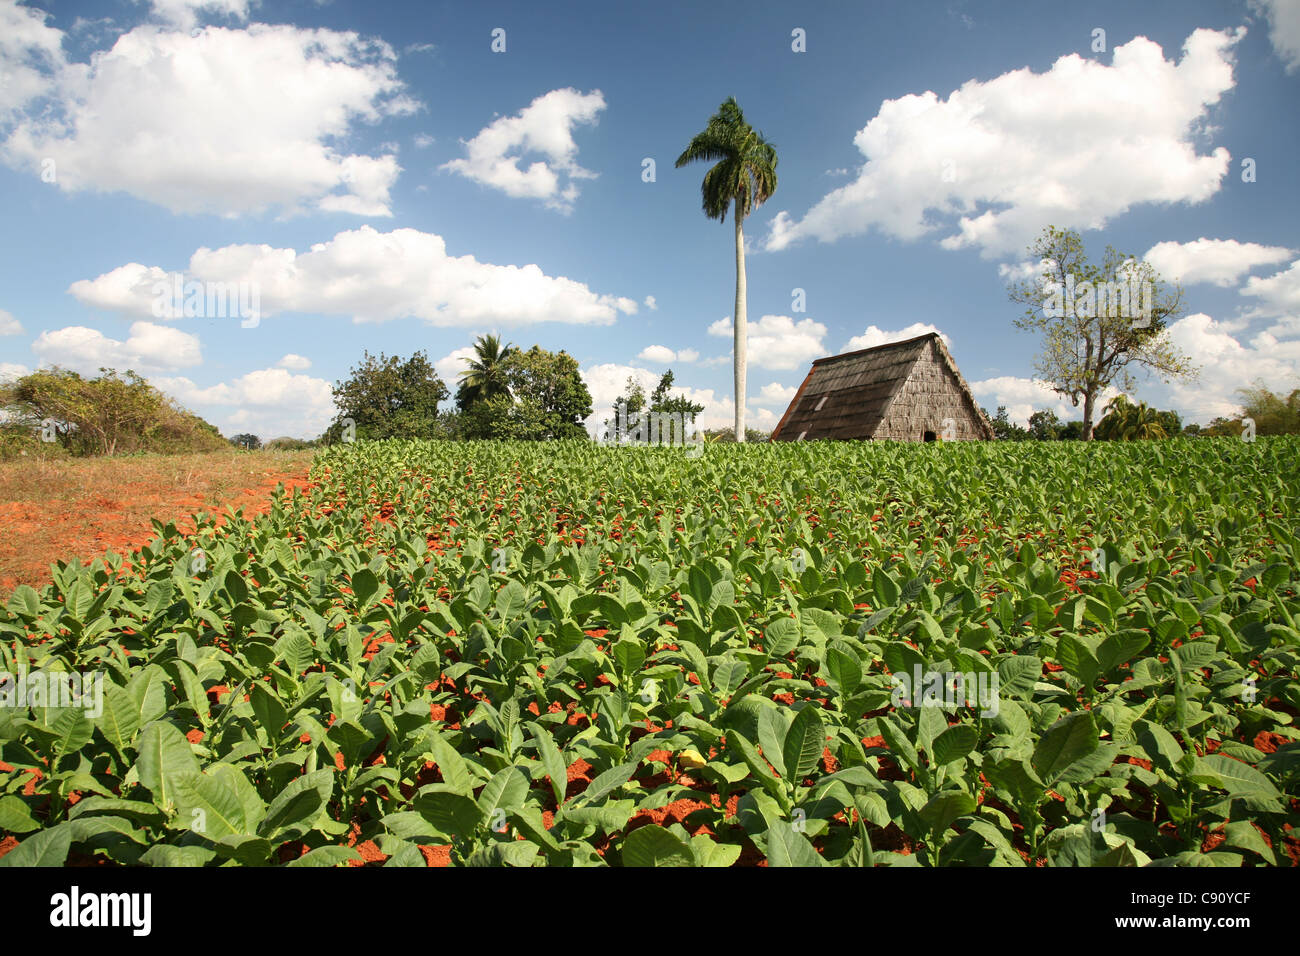 Tobacco plantation with a drying house in the background in the Vinales Valley, Cuba. - Stock Image